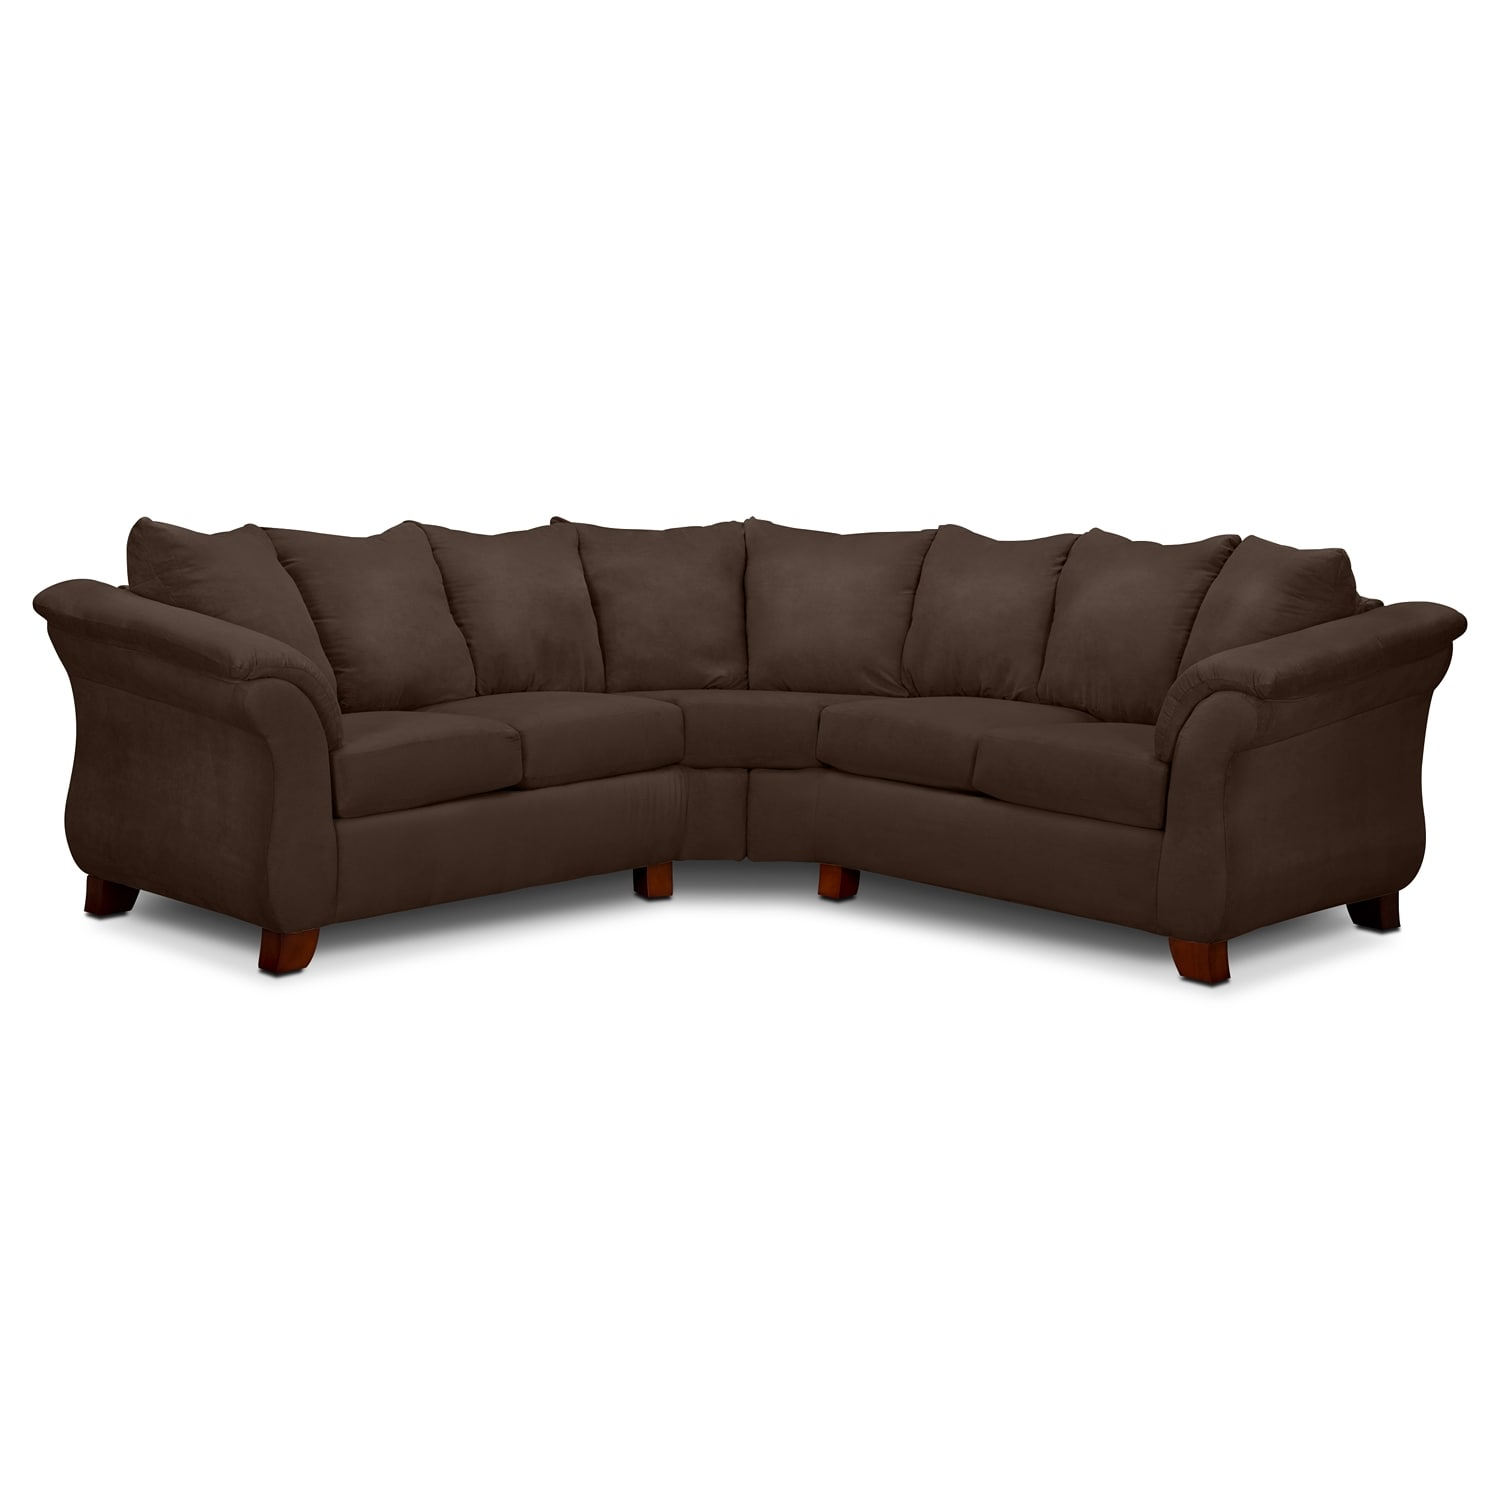 Living Room Furniture - Adrian Chocolate II 2 Pc. Sectional